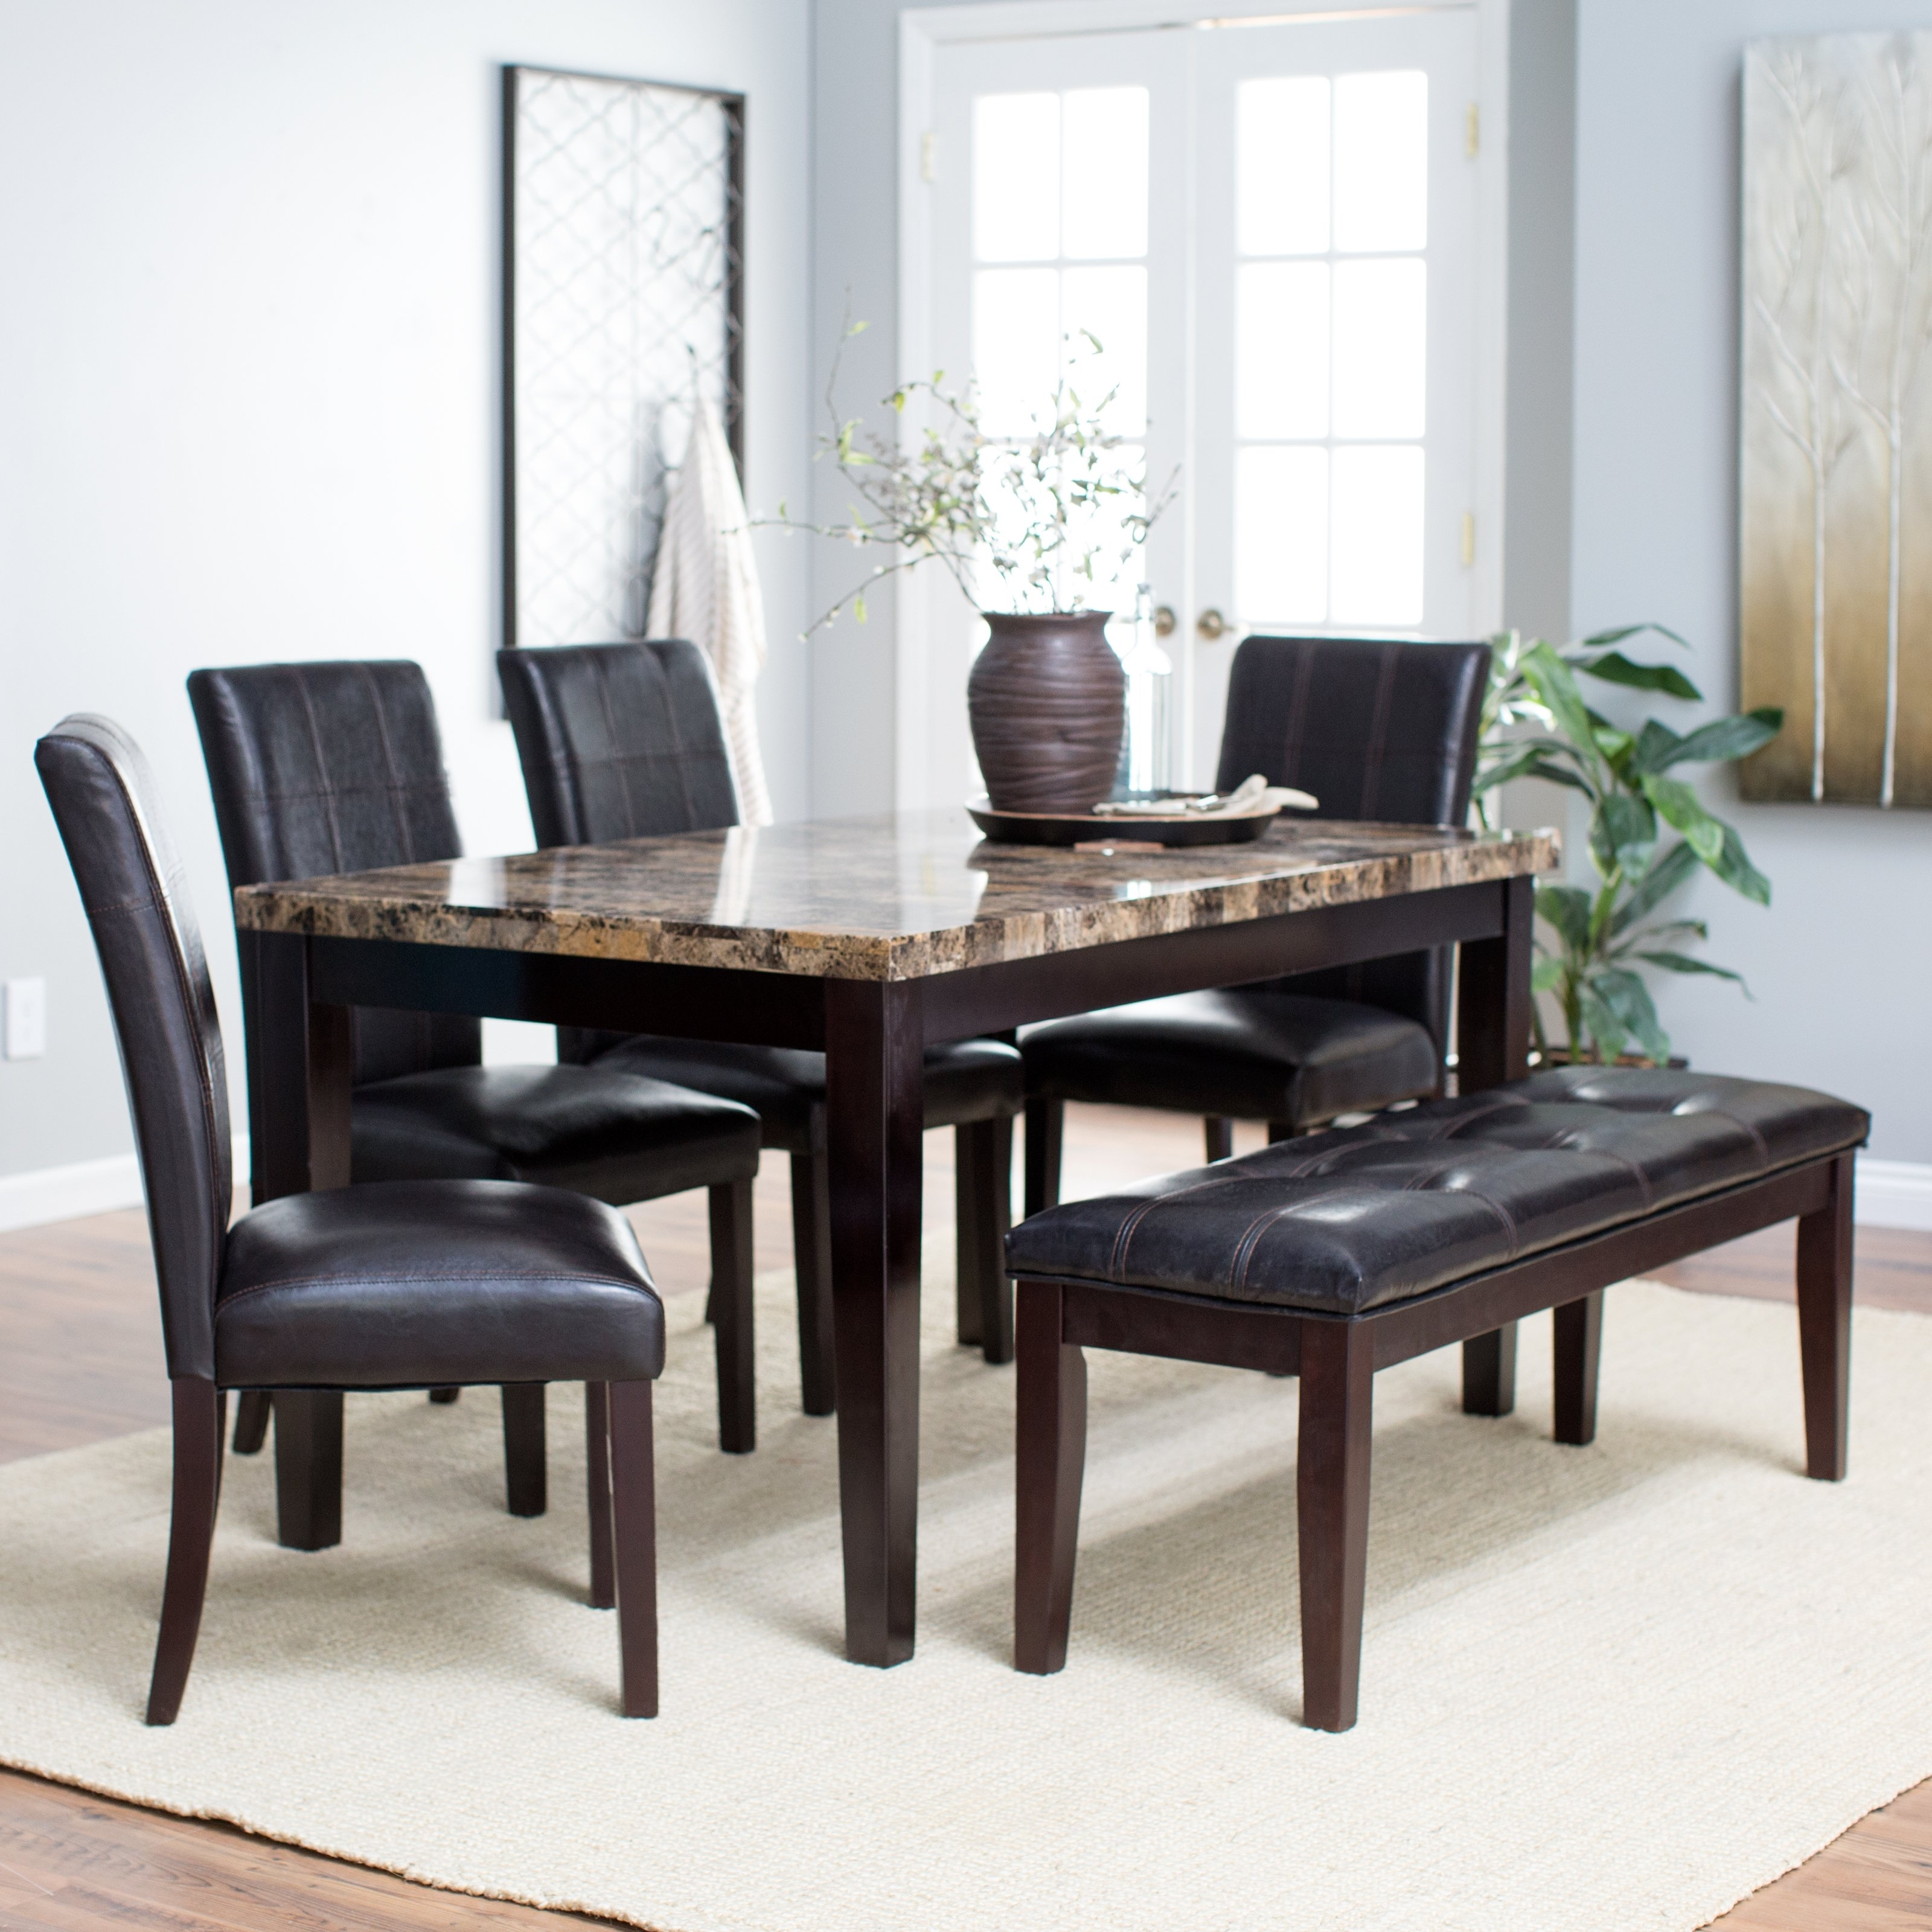 Finley Home Palazzo 6 Piece Dining Set With Bench (View 3 of 25)